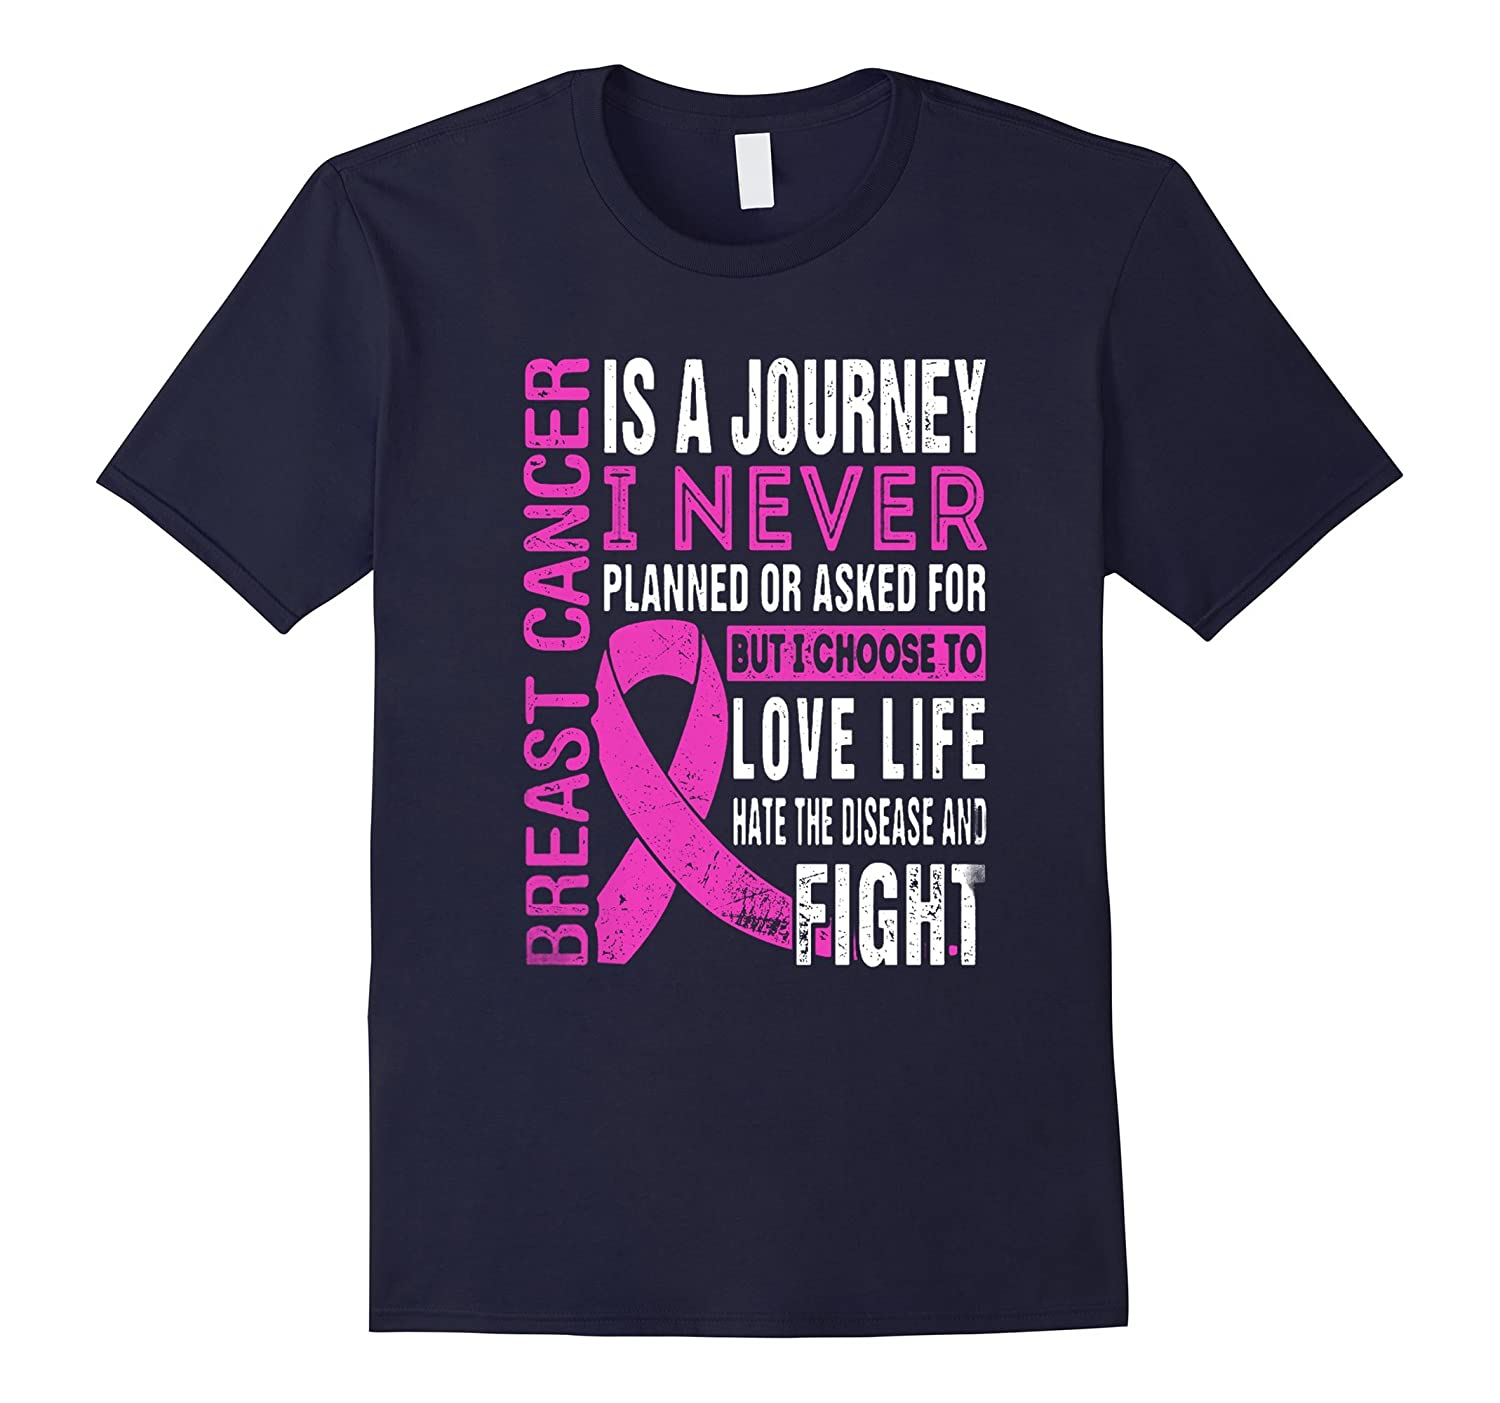 Breast Cancer Awareness Shirts For Women